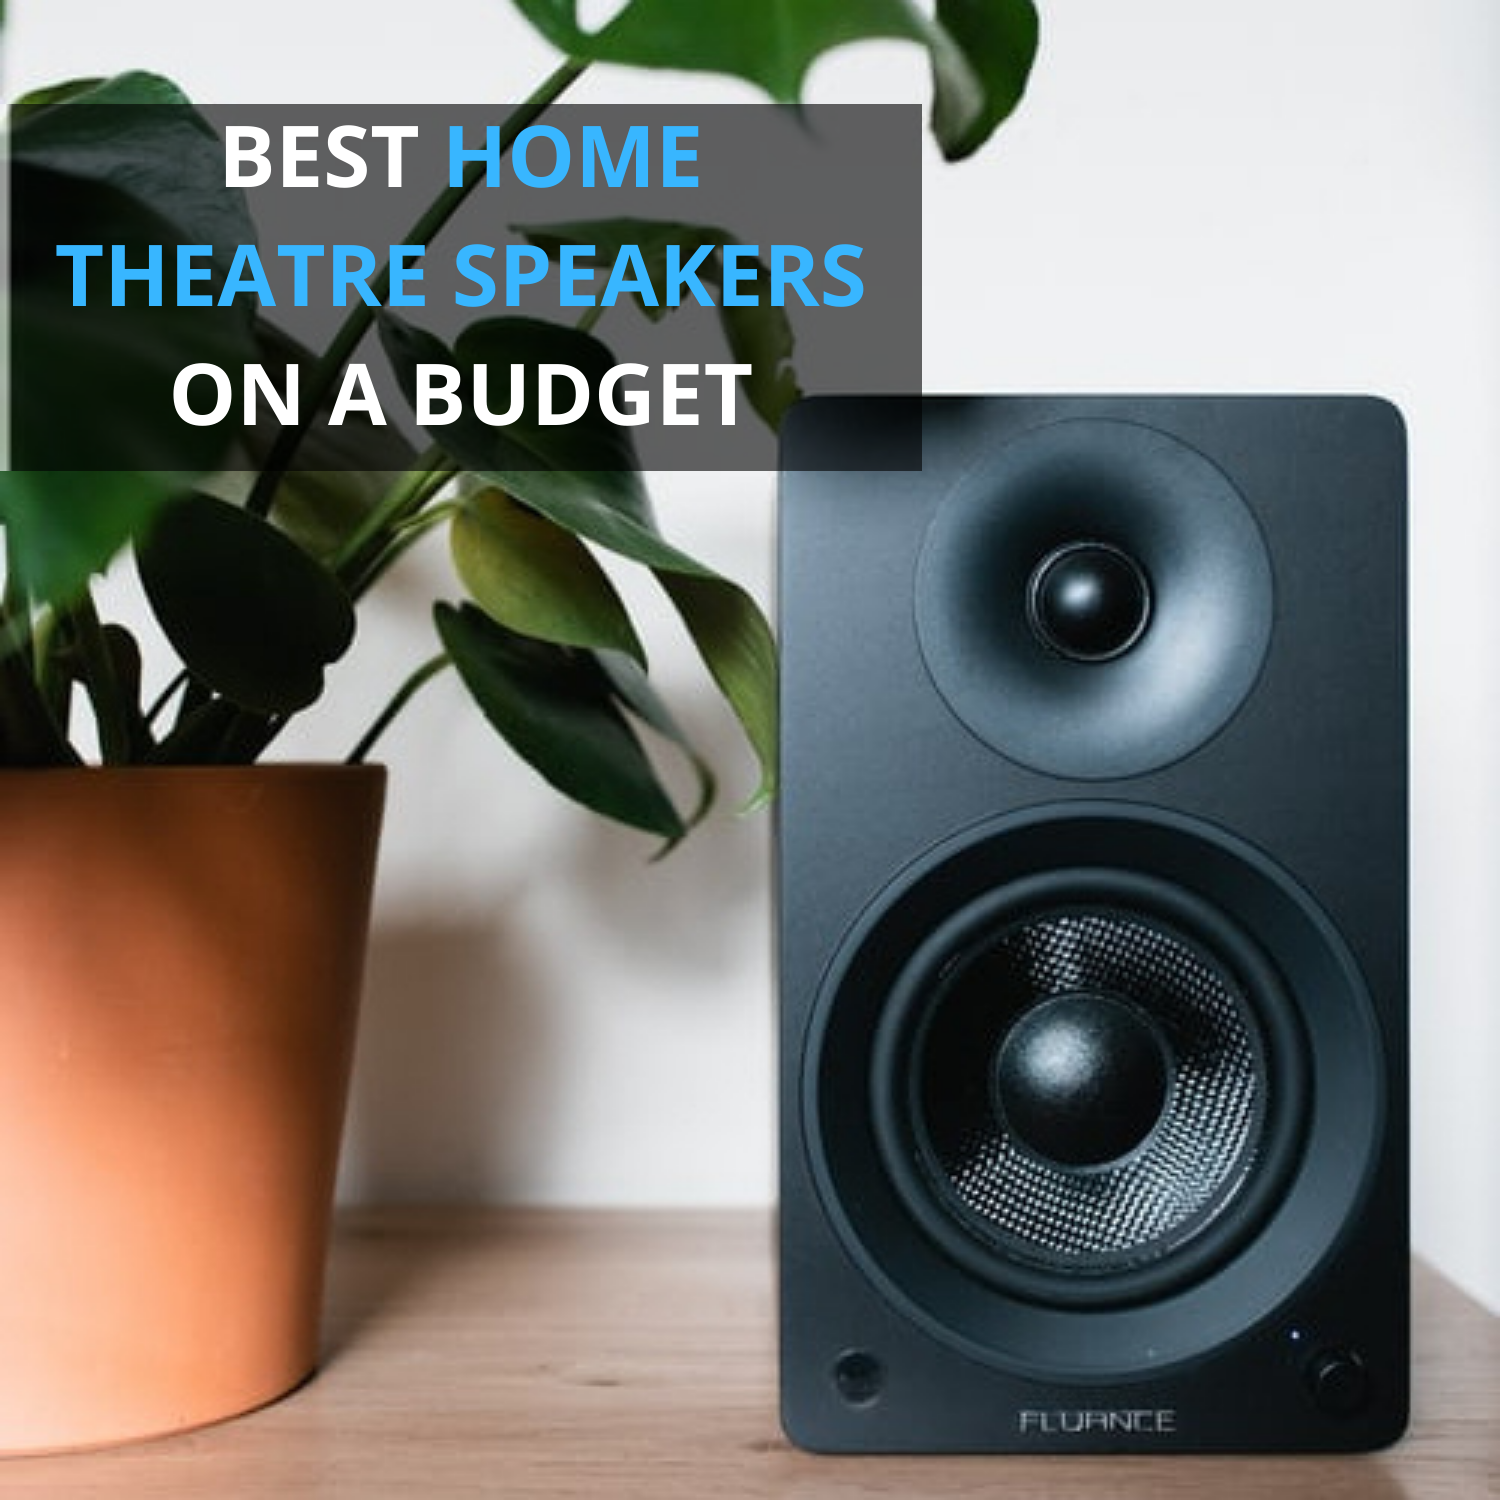 Best Home Theatre Speakers On A Budget